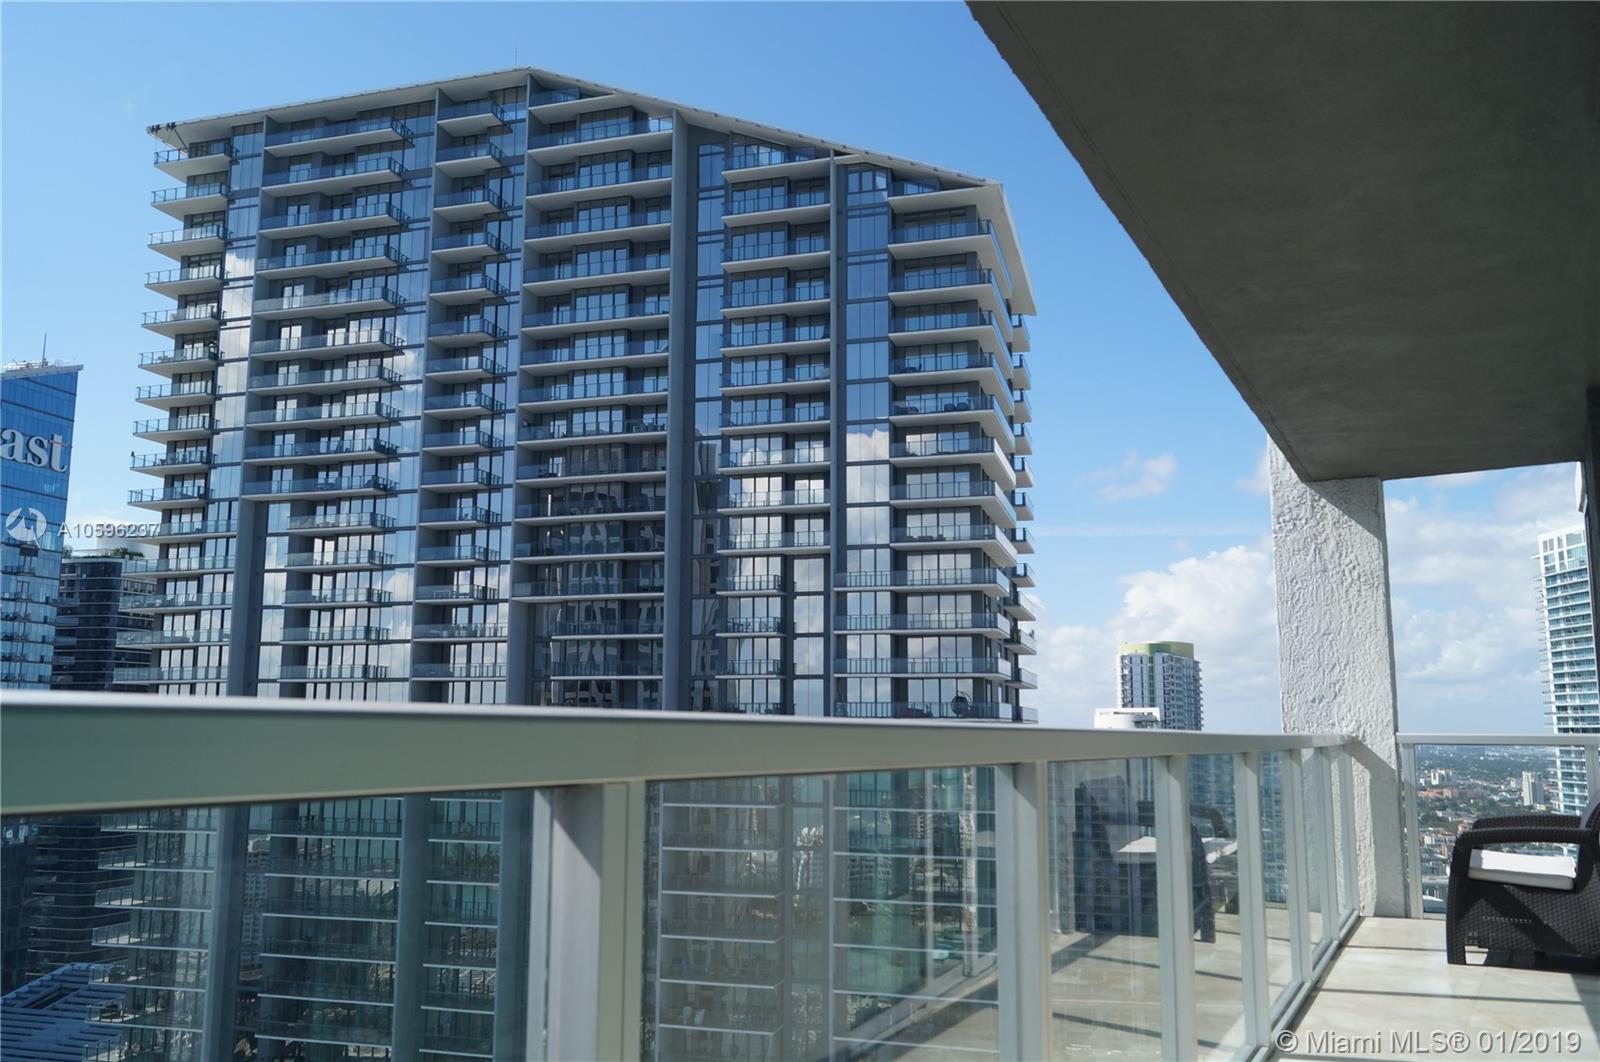 500 Brickell Avenue and 55 SE 6 Street, Miami, FL 33131, 500 Brickell #3602, Brickell, Miami A10596237 image #28